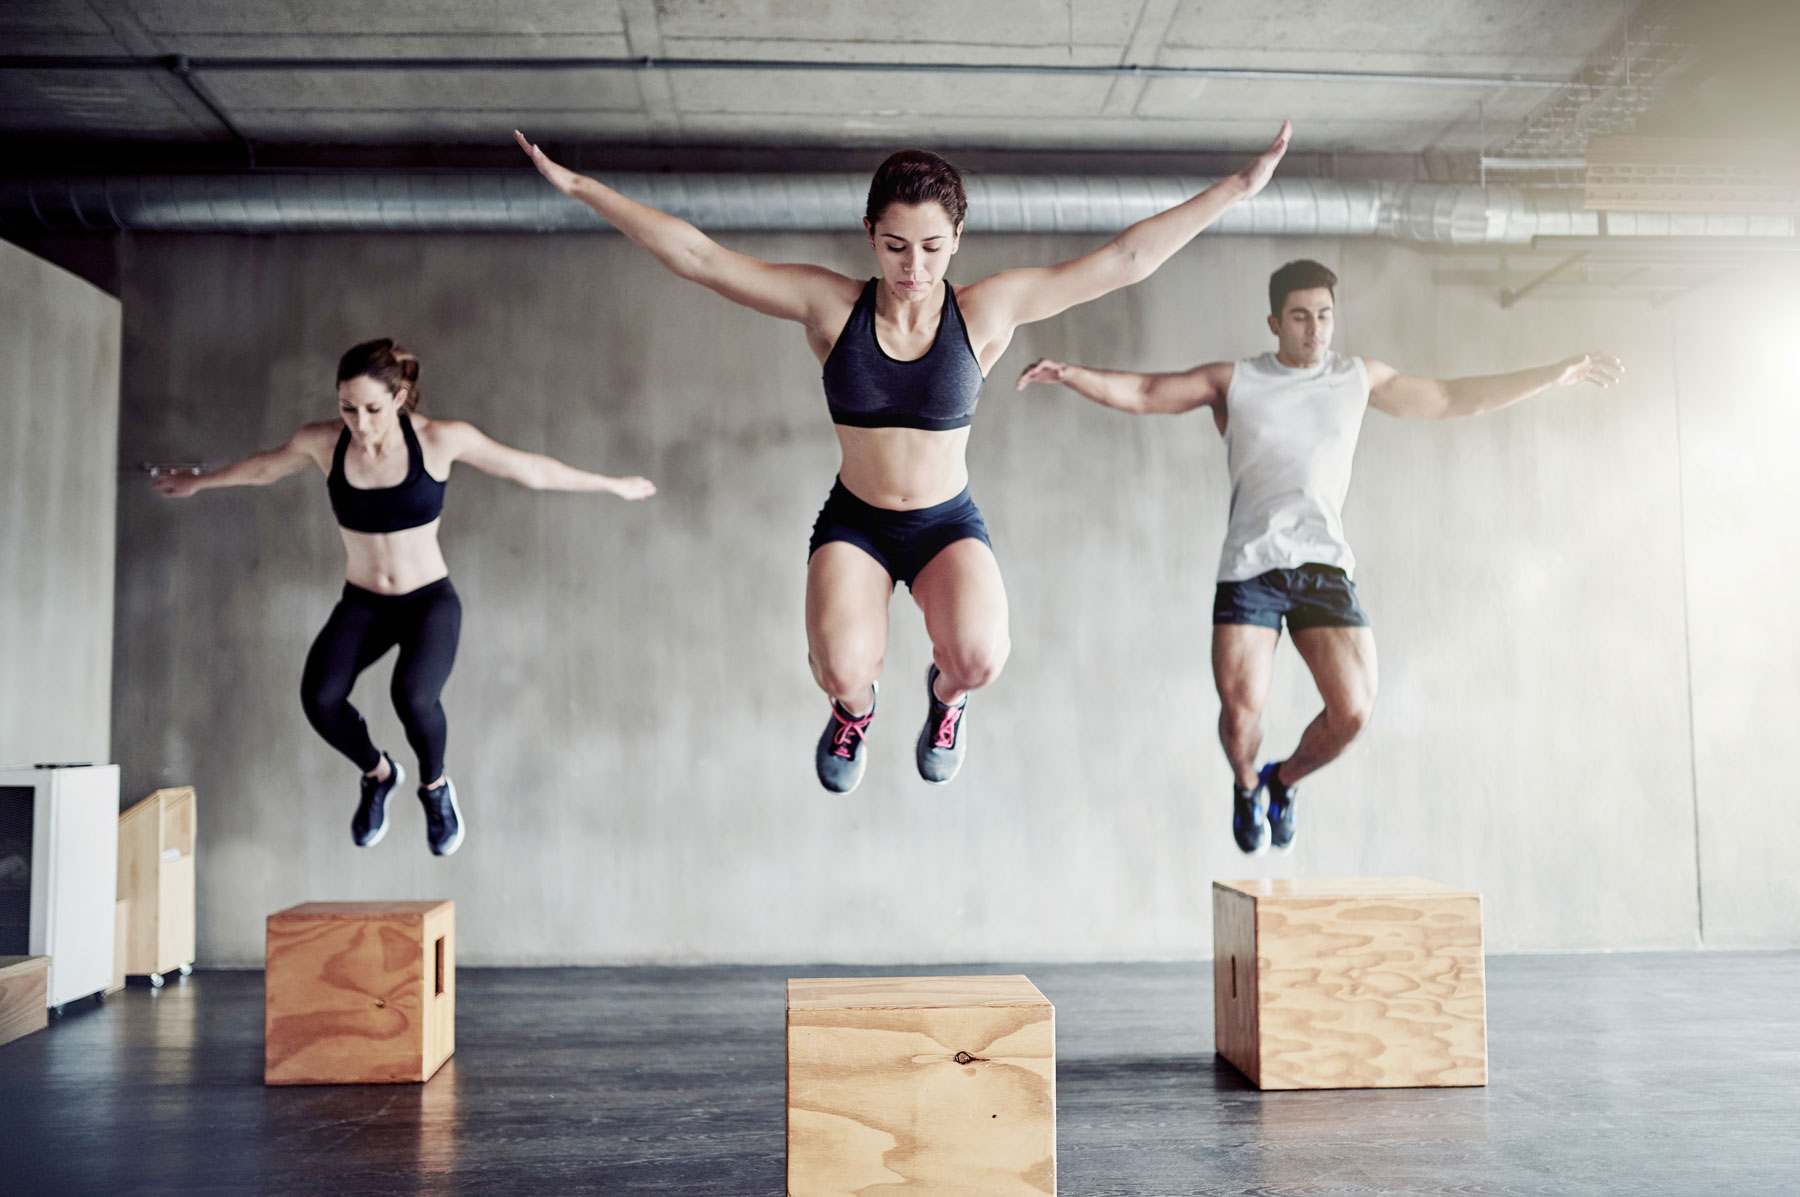 The toughest workouts on classpass, according to reviewers (people box-jumping)